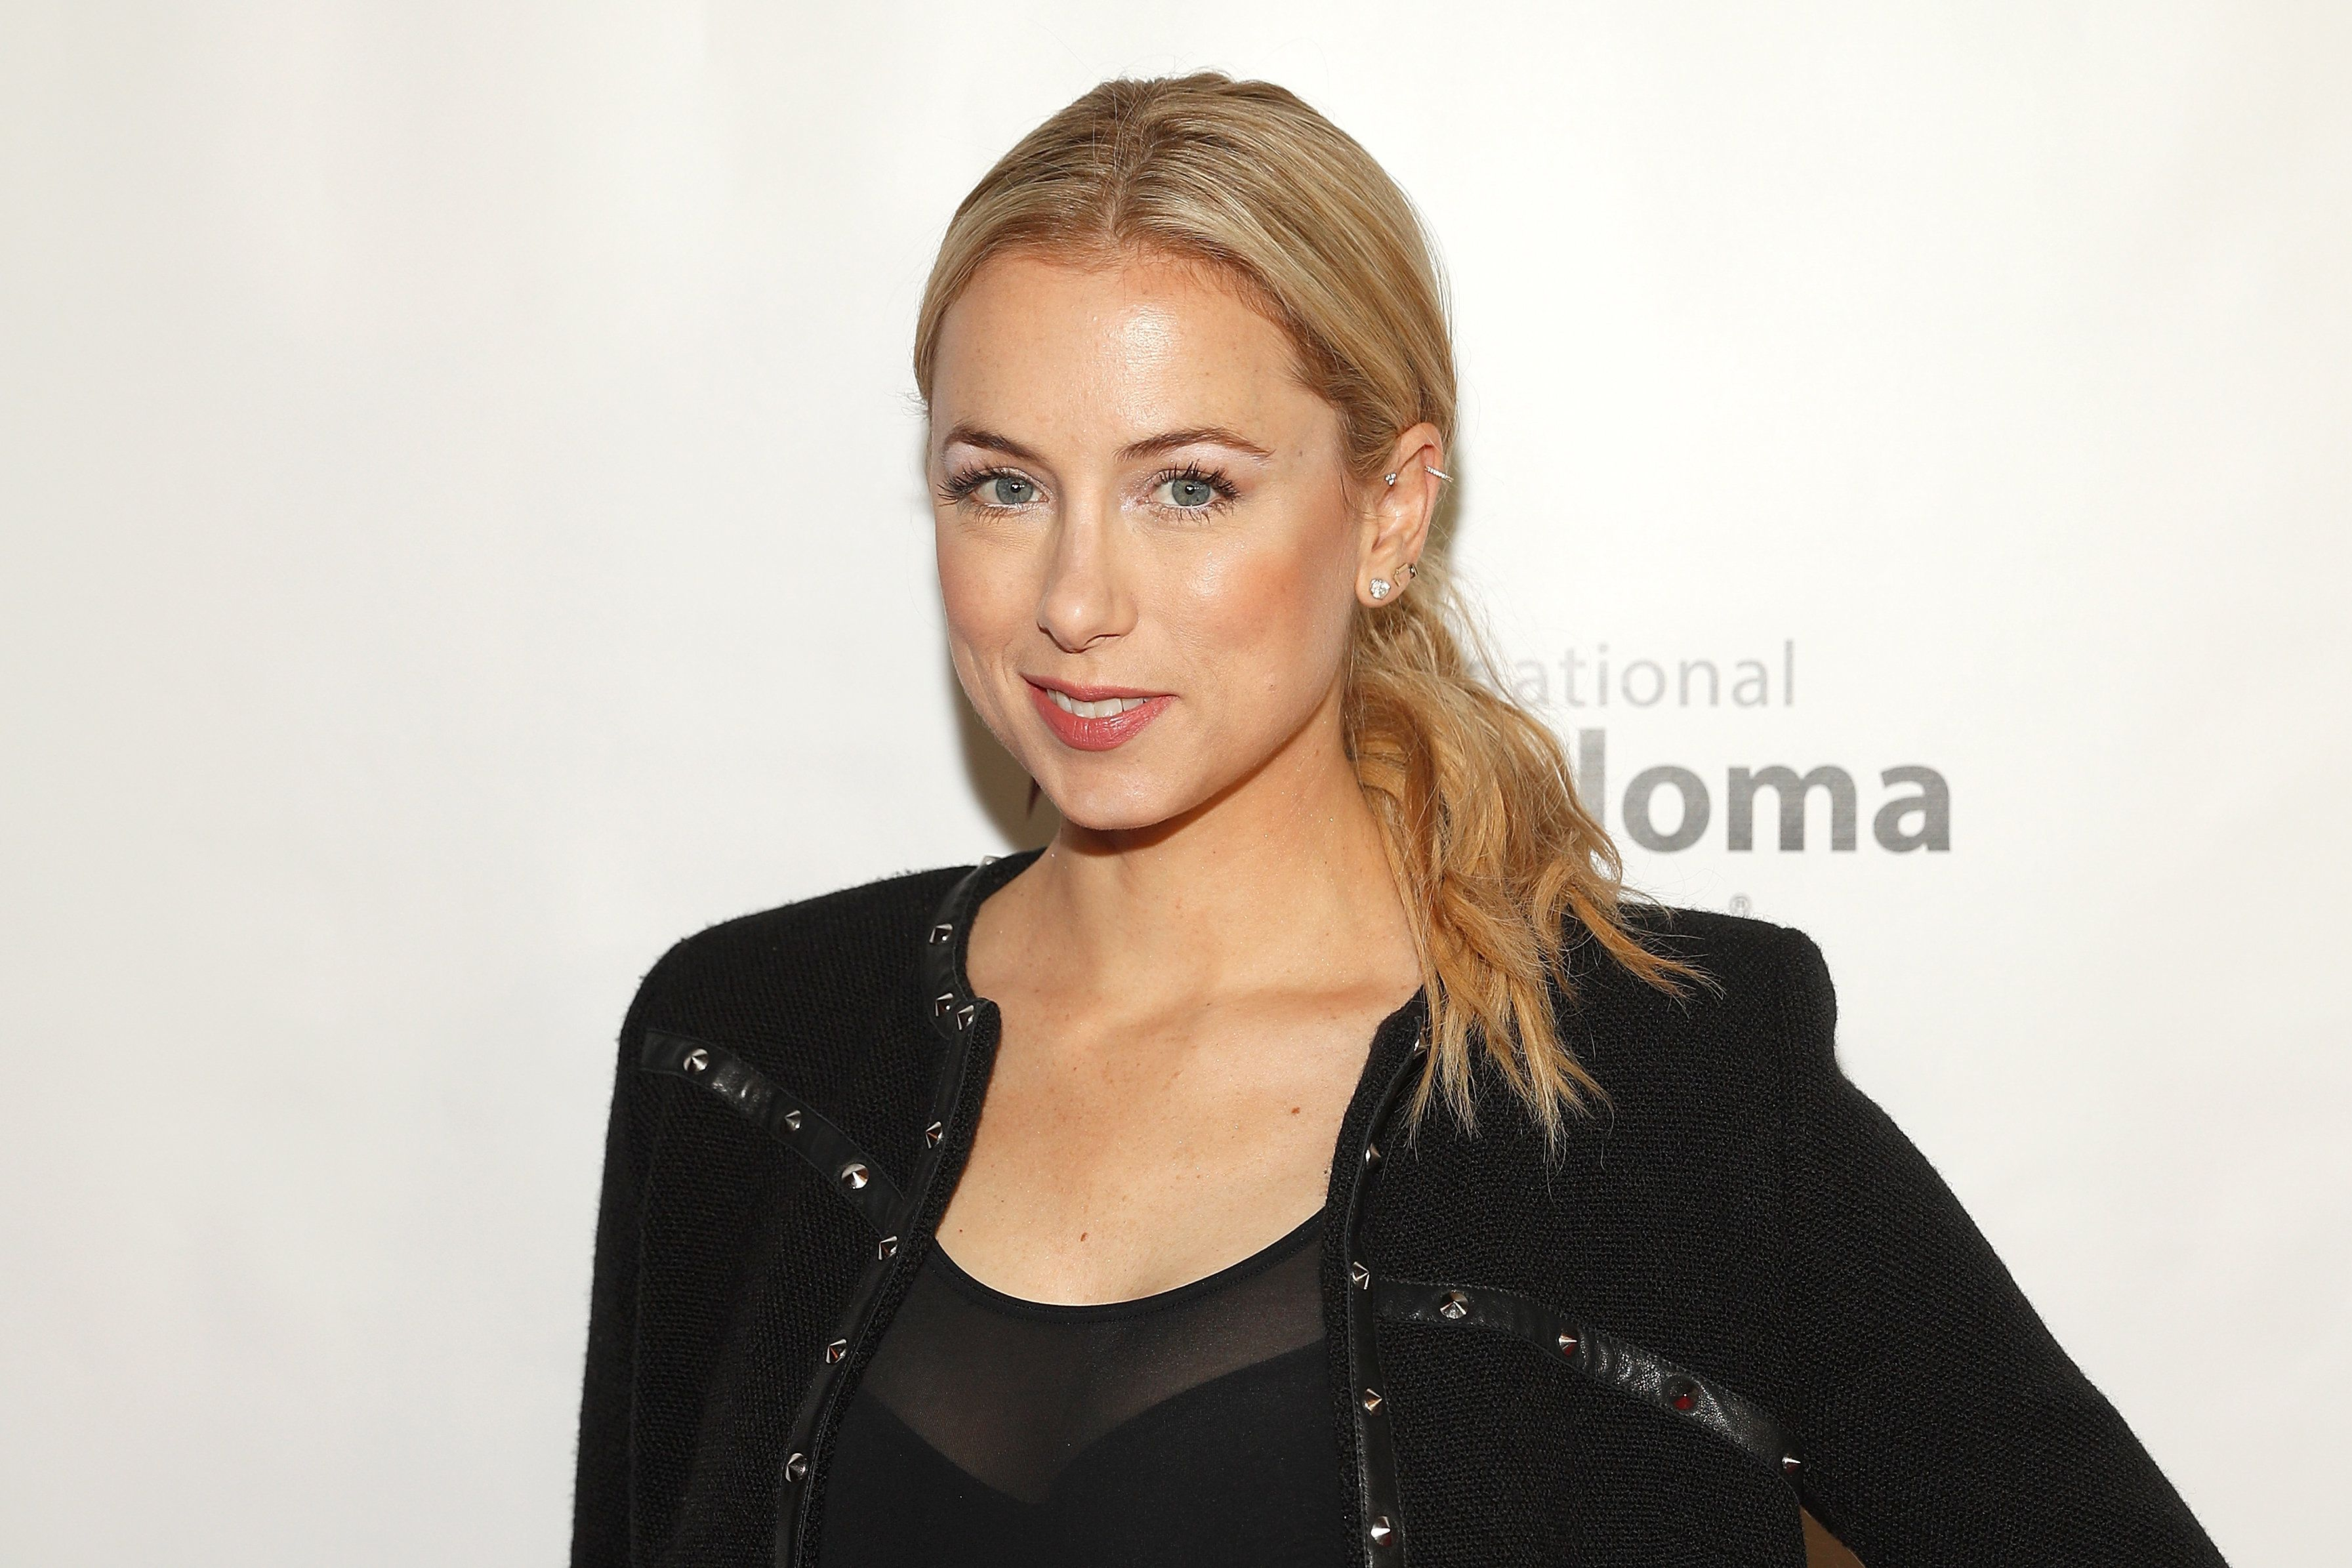 LOS ANGELES, CA - NOVEMBER 04:  Comedian Iliza Shlesinger attends the International Myeloma Foundation 11th Annual Comedy Celebration at The Wilshire Ebell Theatre on November 4, 2017 in Los Angeles, California.  (Photo by Josh Lefkowitz/FilmMagic)